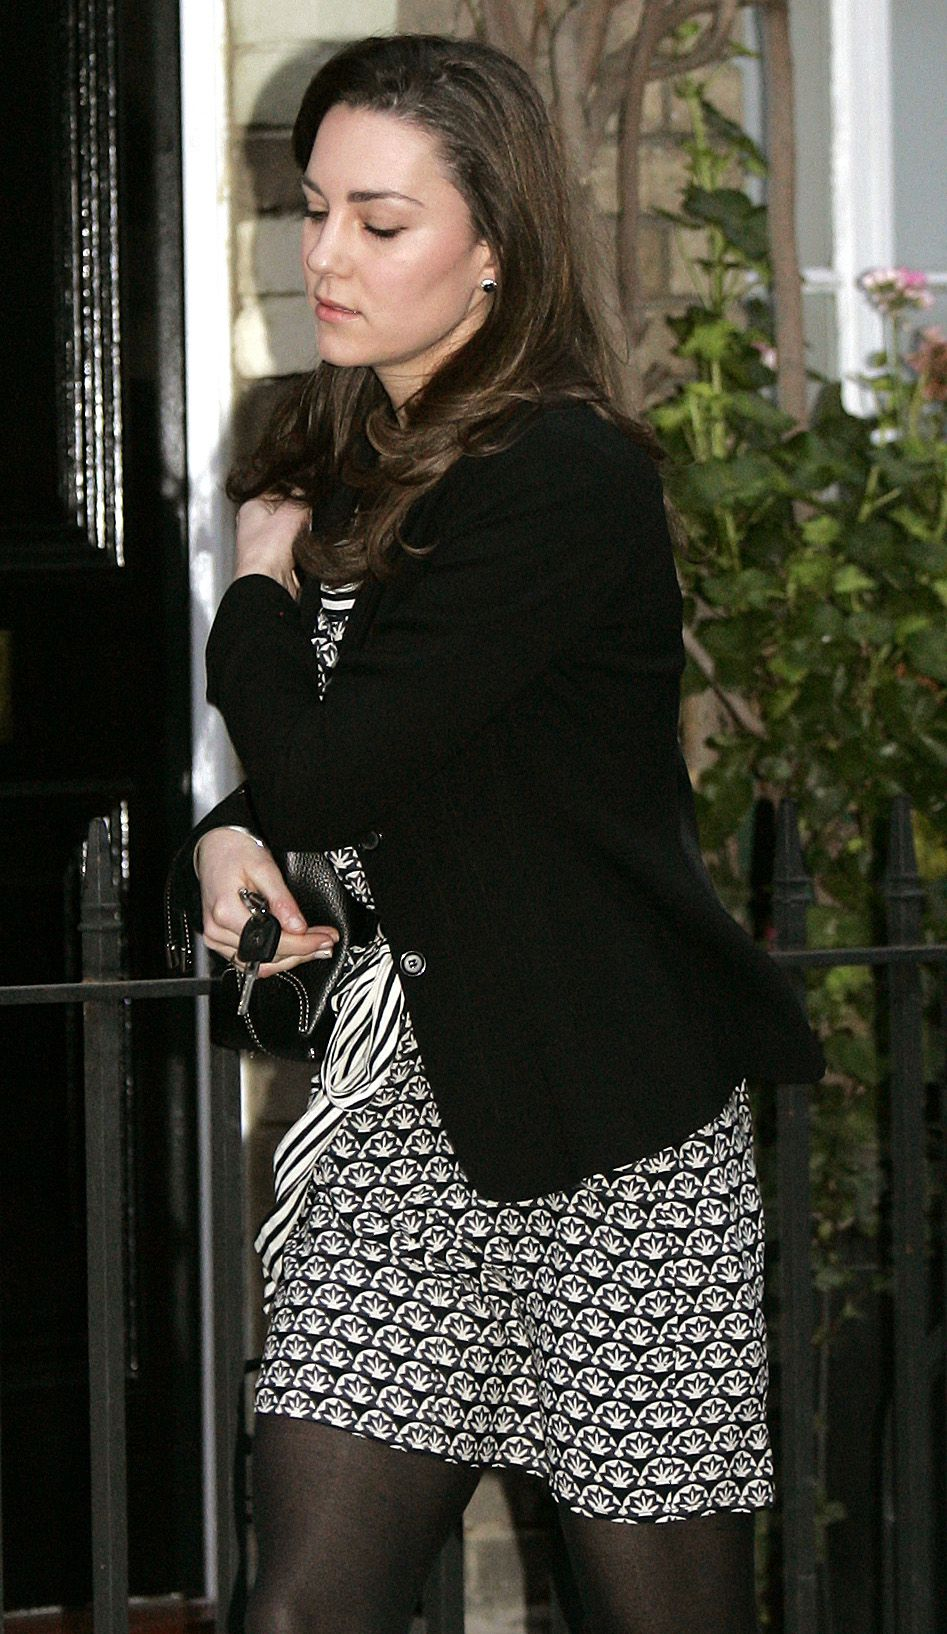 BEJAAGD DOOR DE PERS: Kate Middleton, de vriendin van de Britse kroonprins William, die bijna gaat trouwen. Foto AP Kate Middleton leaves her home in London, Tuesday Jan. 9, 2007. The girlfriend of Britain's Prince William celebrates her 25th birthday Tuesday amidst persistent reports in recent weeks that the two may soon announce their engagement. (AP Photo/STF)